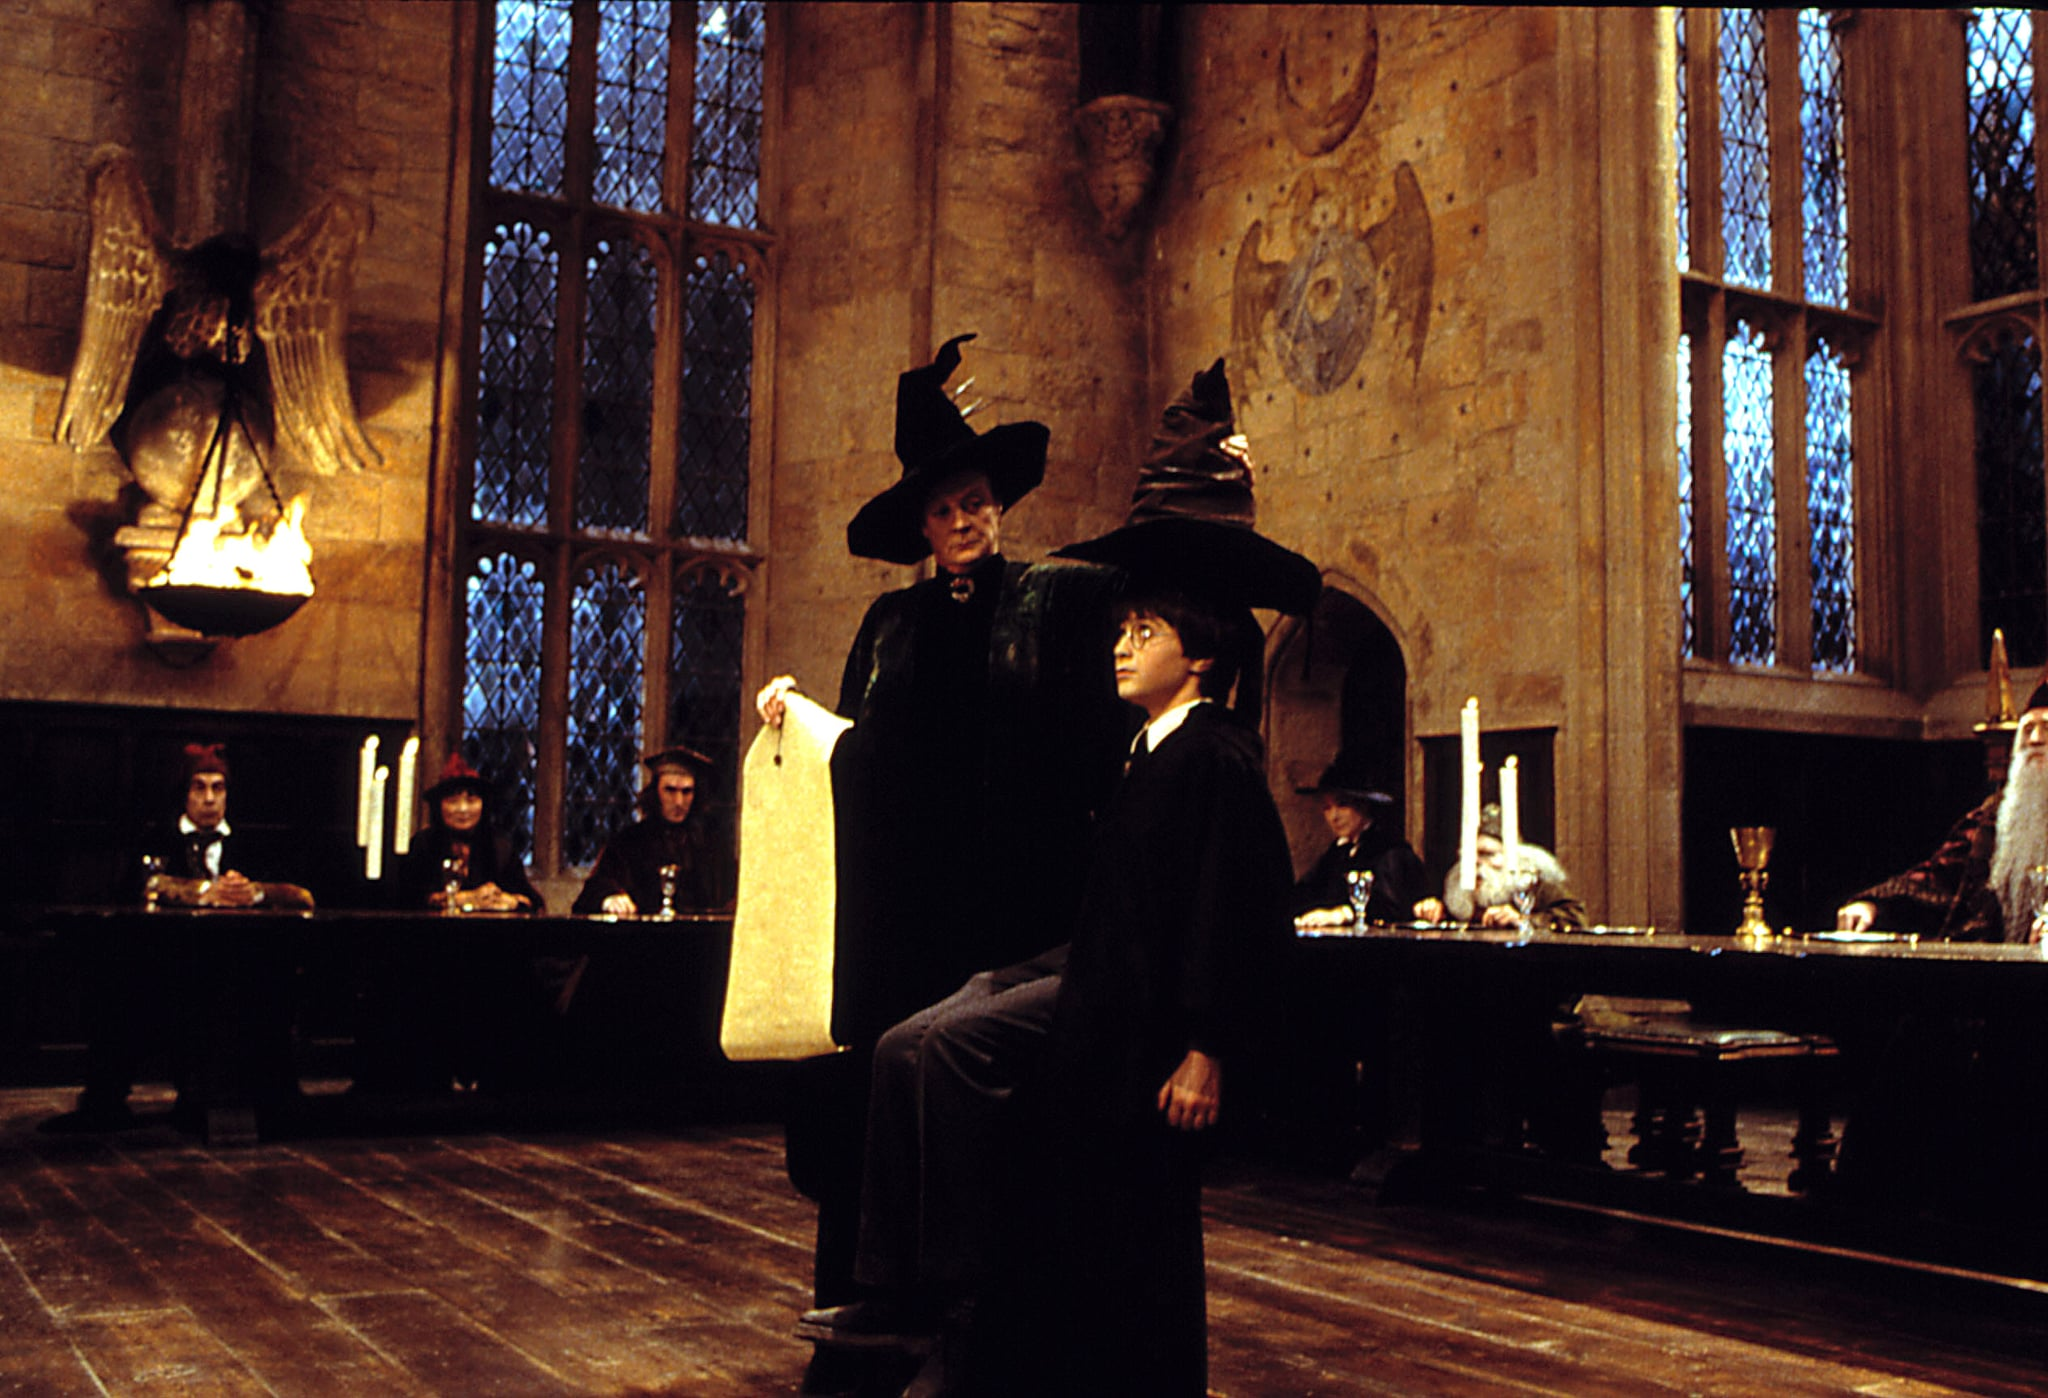 HARRY POTTER AND THE SORCERER'S STONE, Maggie Smith, Daniel Radcliffe, 2001.